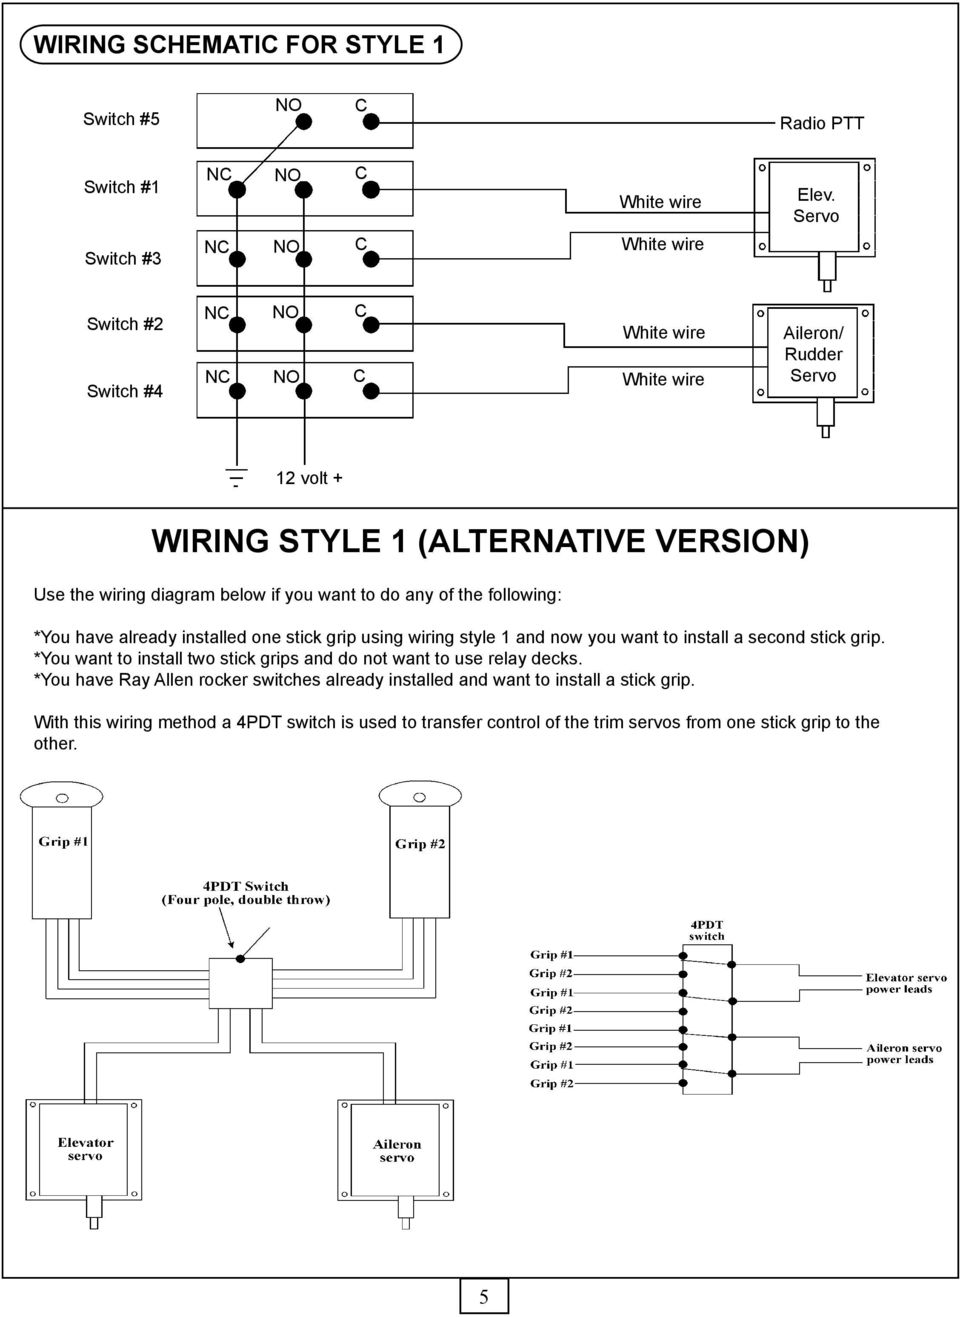 Installation Instructions For G205 And G207 Stick Grips Pdf Double Rocker Switch 12v Wiring Diagram Following You Have Already Installed One Grip Using Style 1 Now